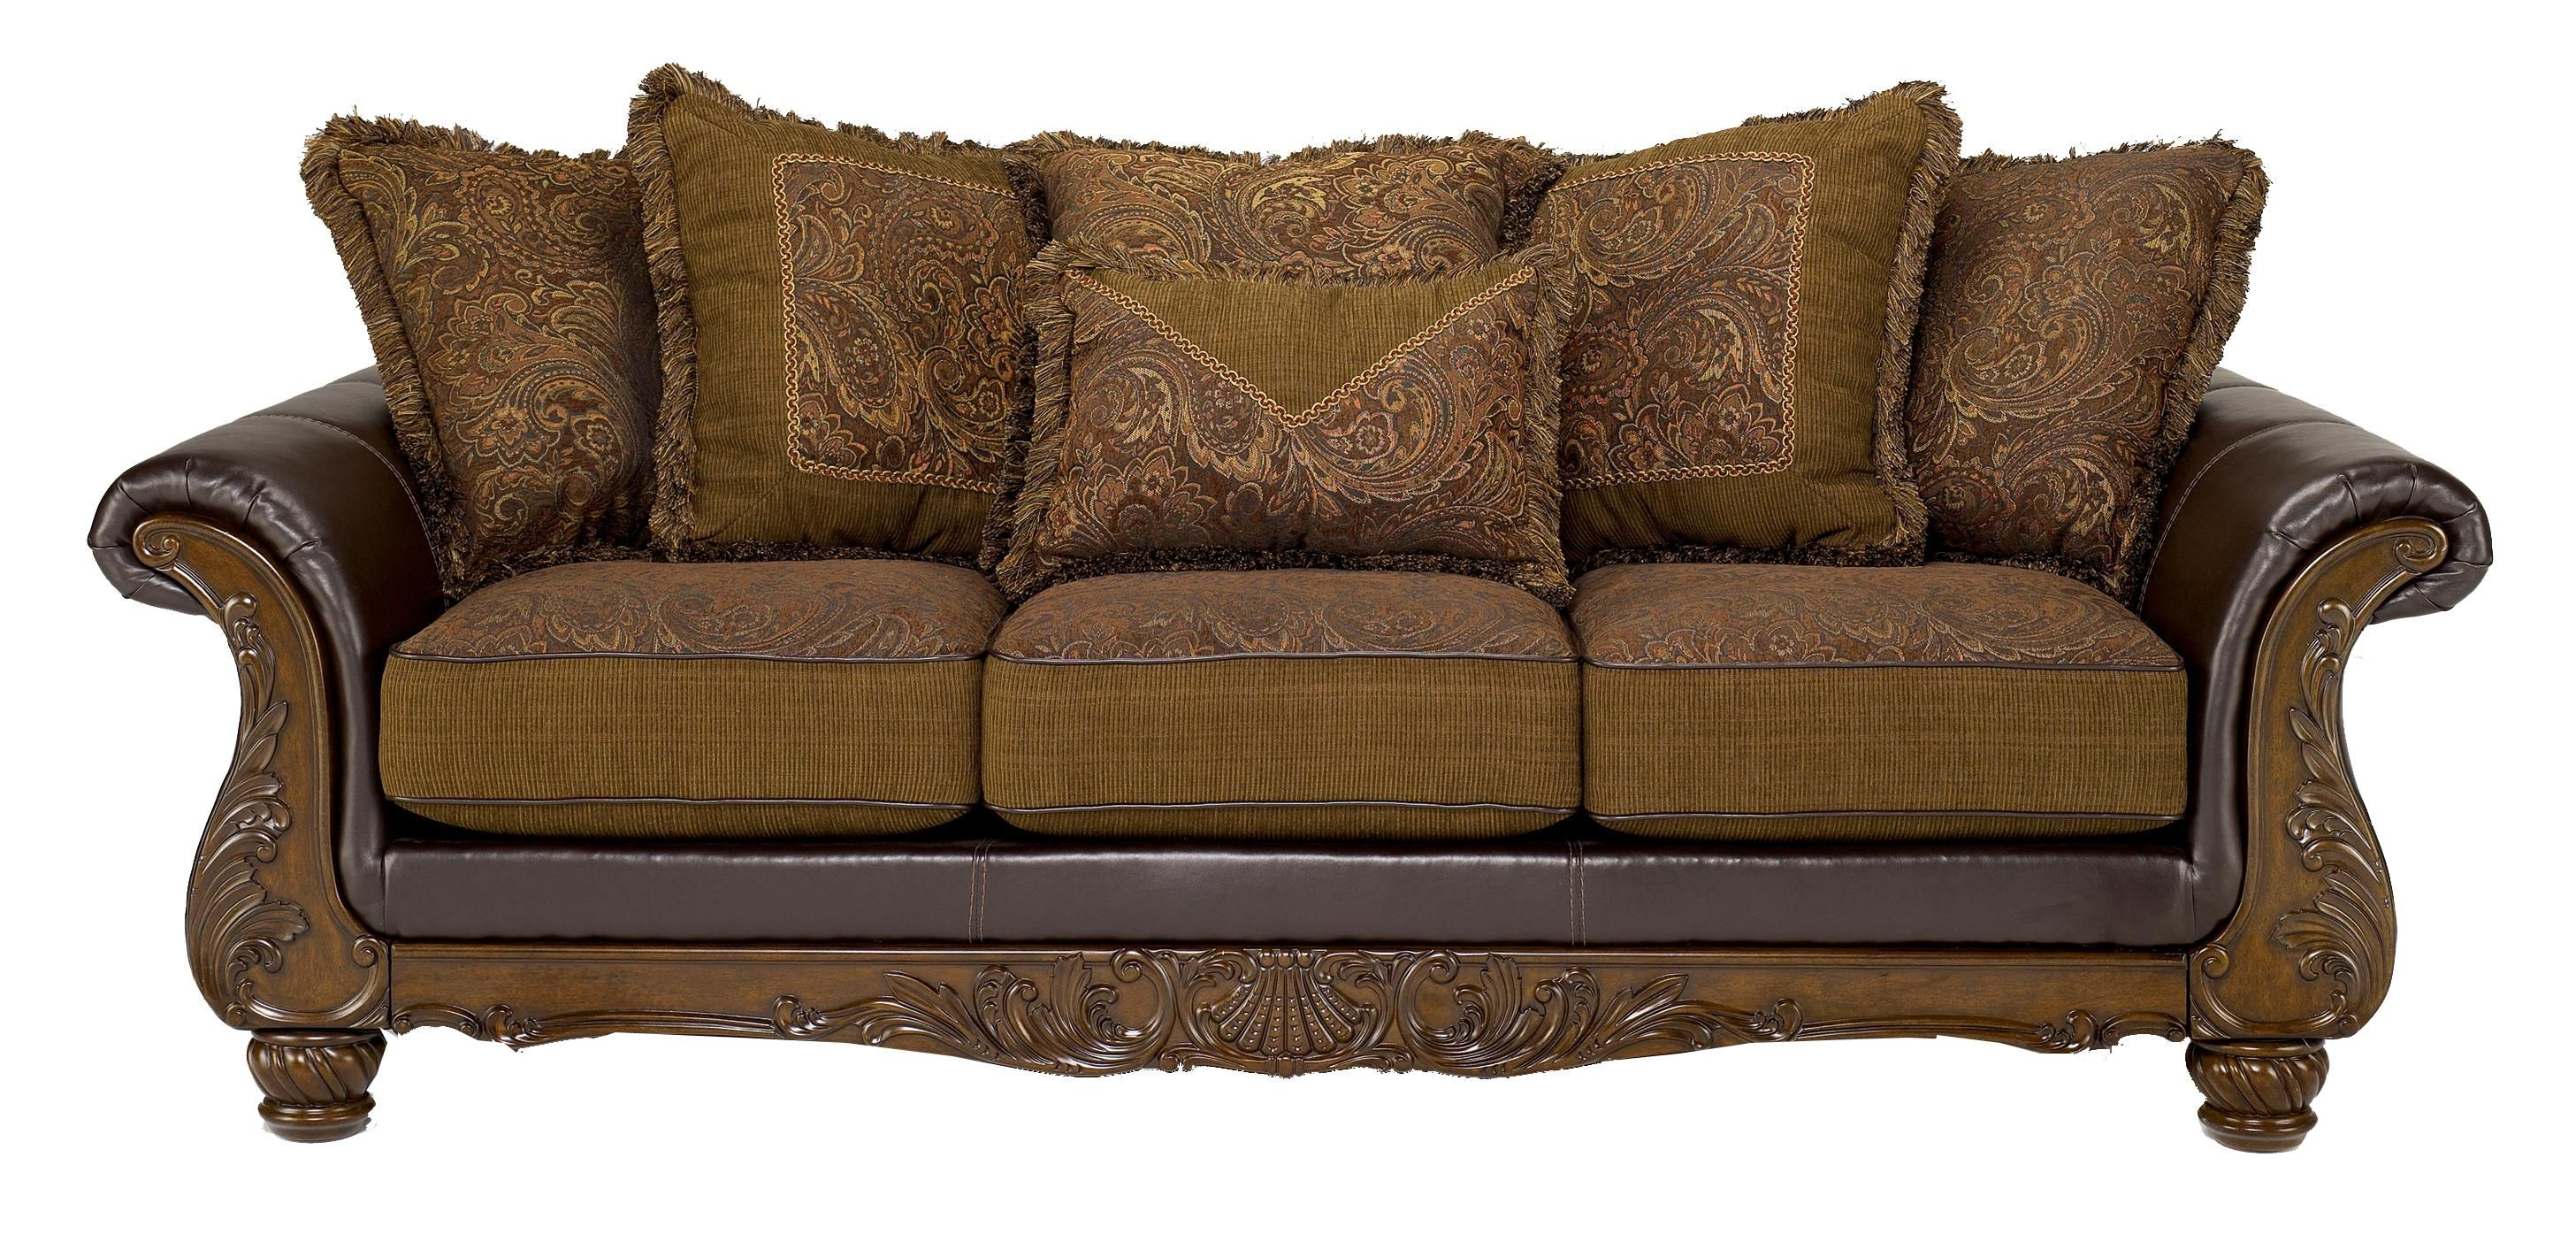 WILMINGTON - WALNUT TRADITIONAL EXPOSED-WOOD SOFA WITH ...